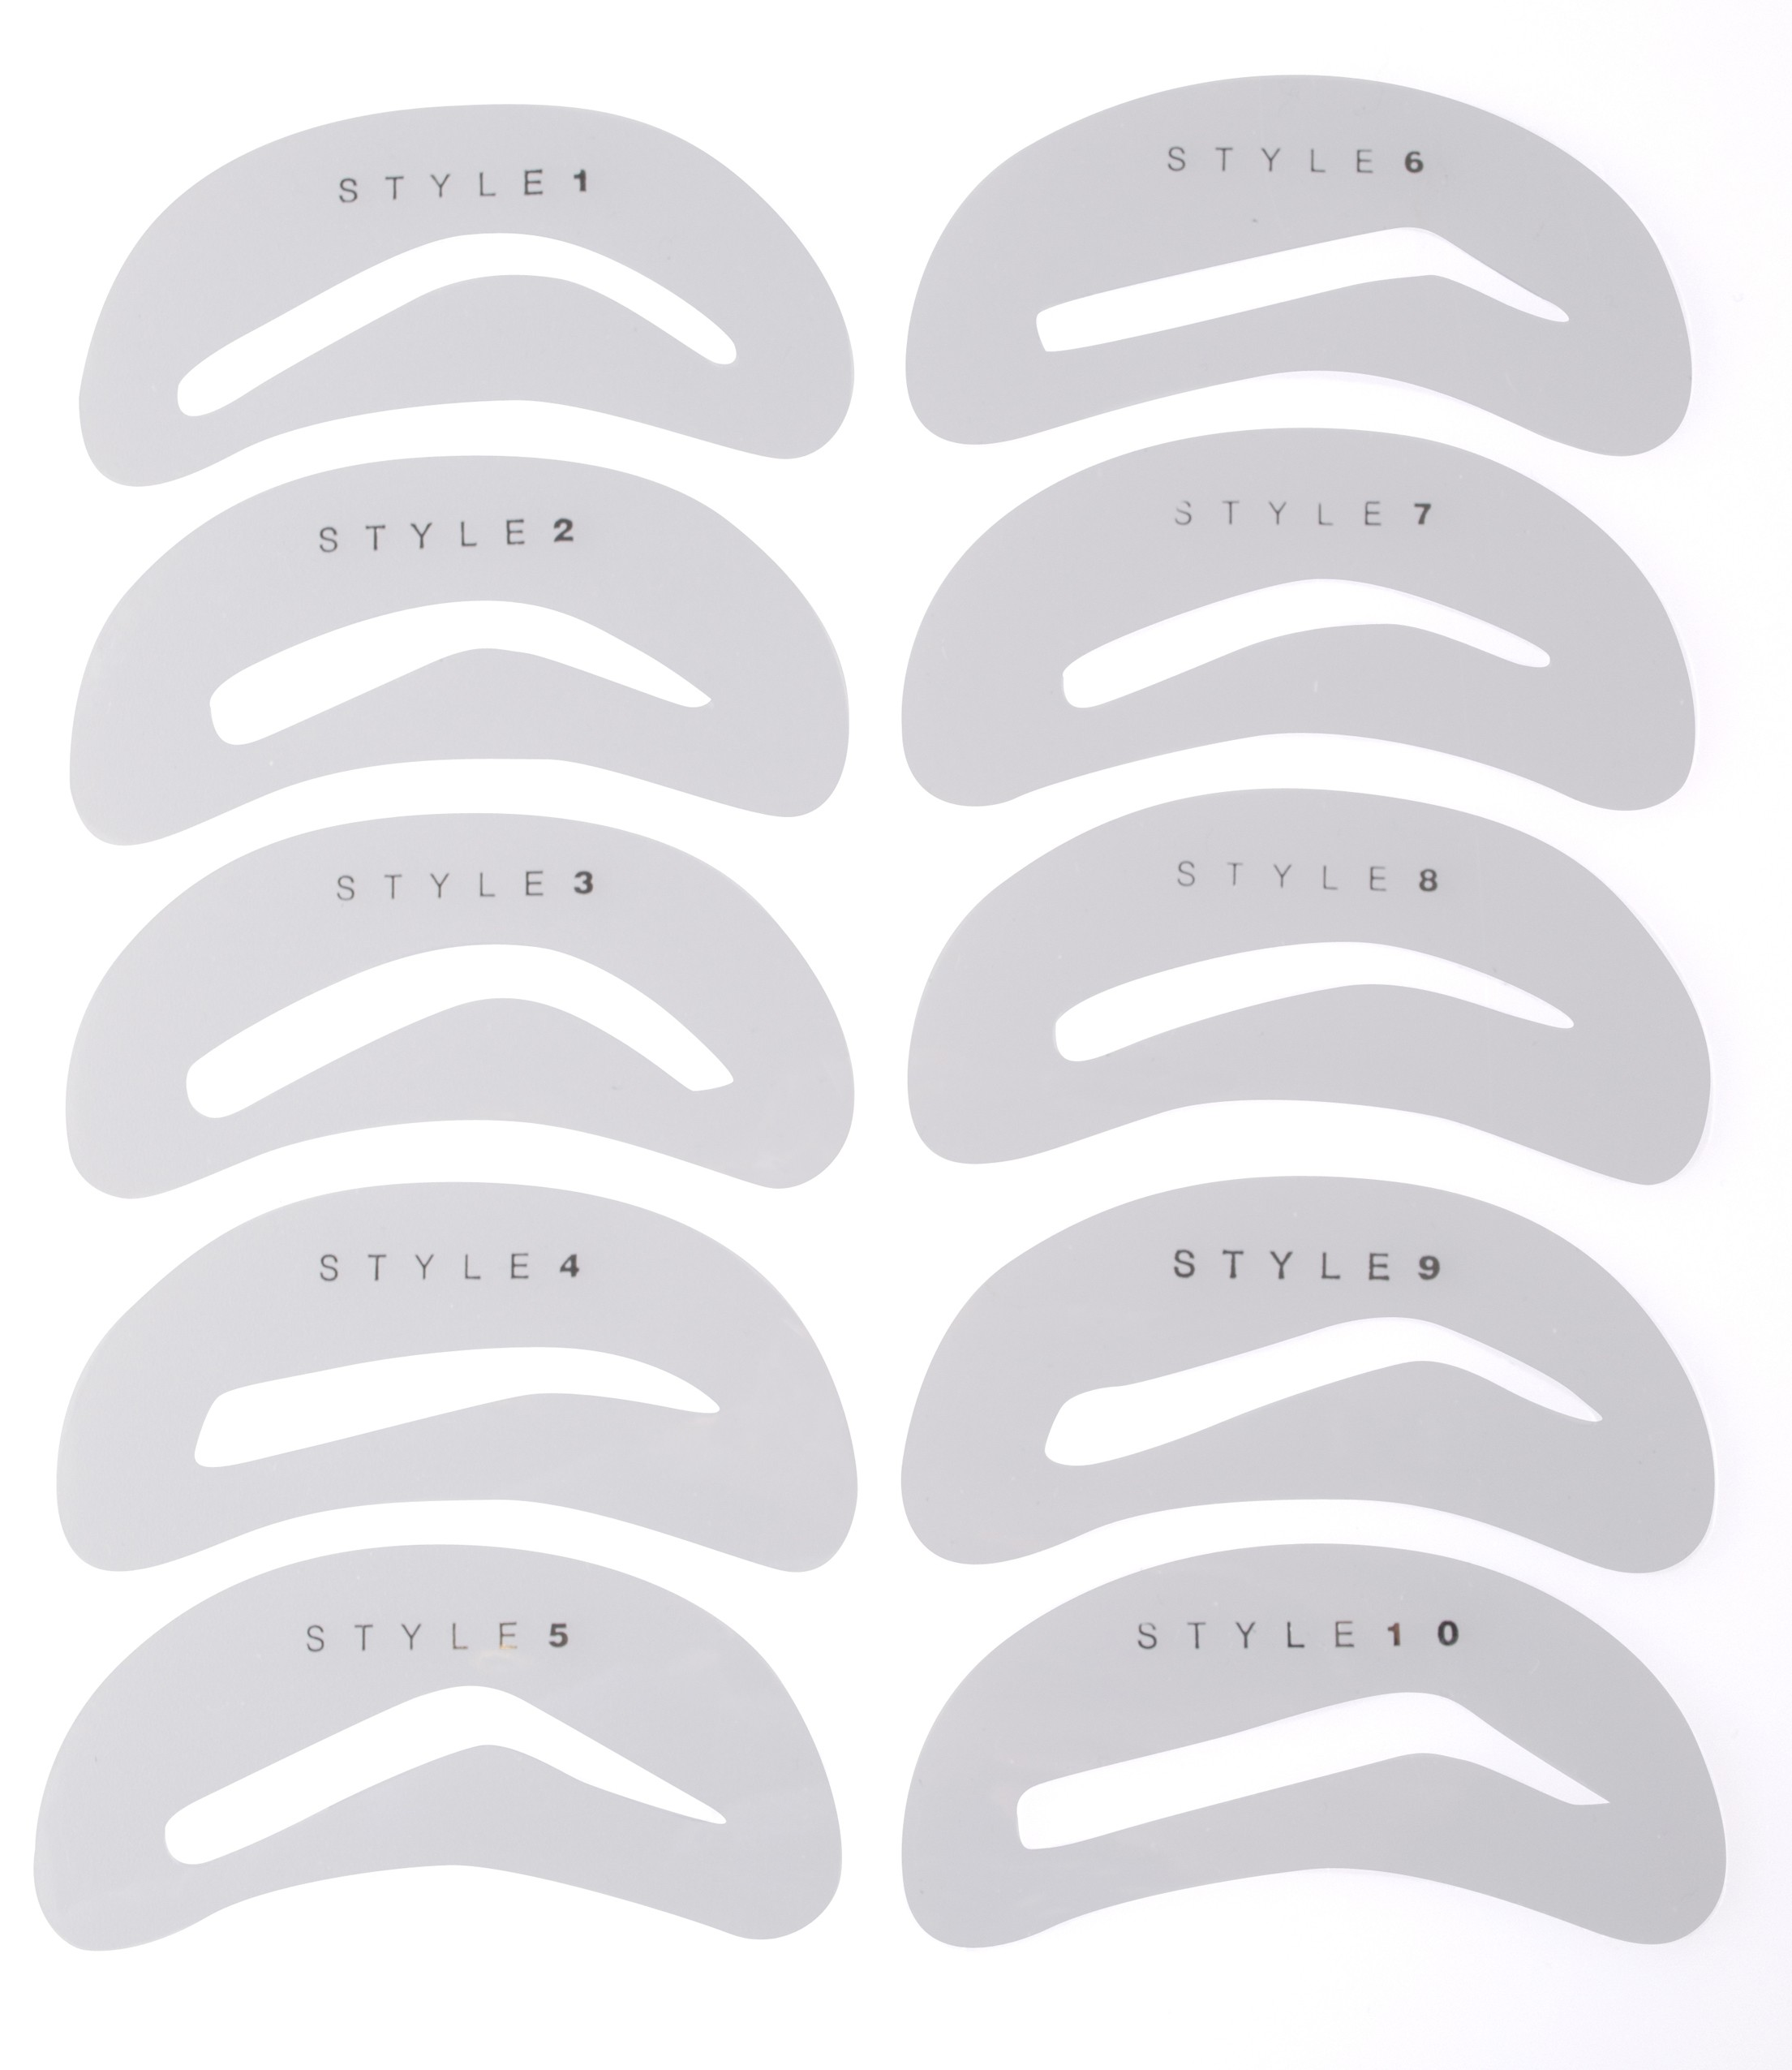 5 Images of Free Online Printable Eyebrow Stencils